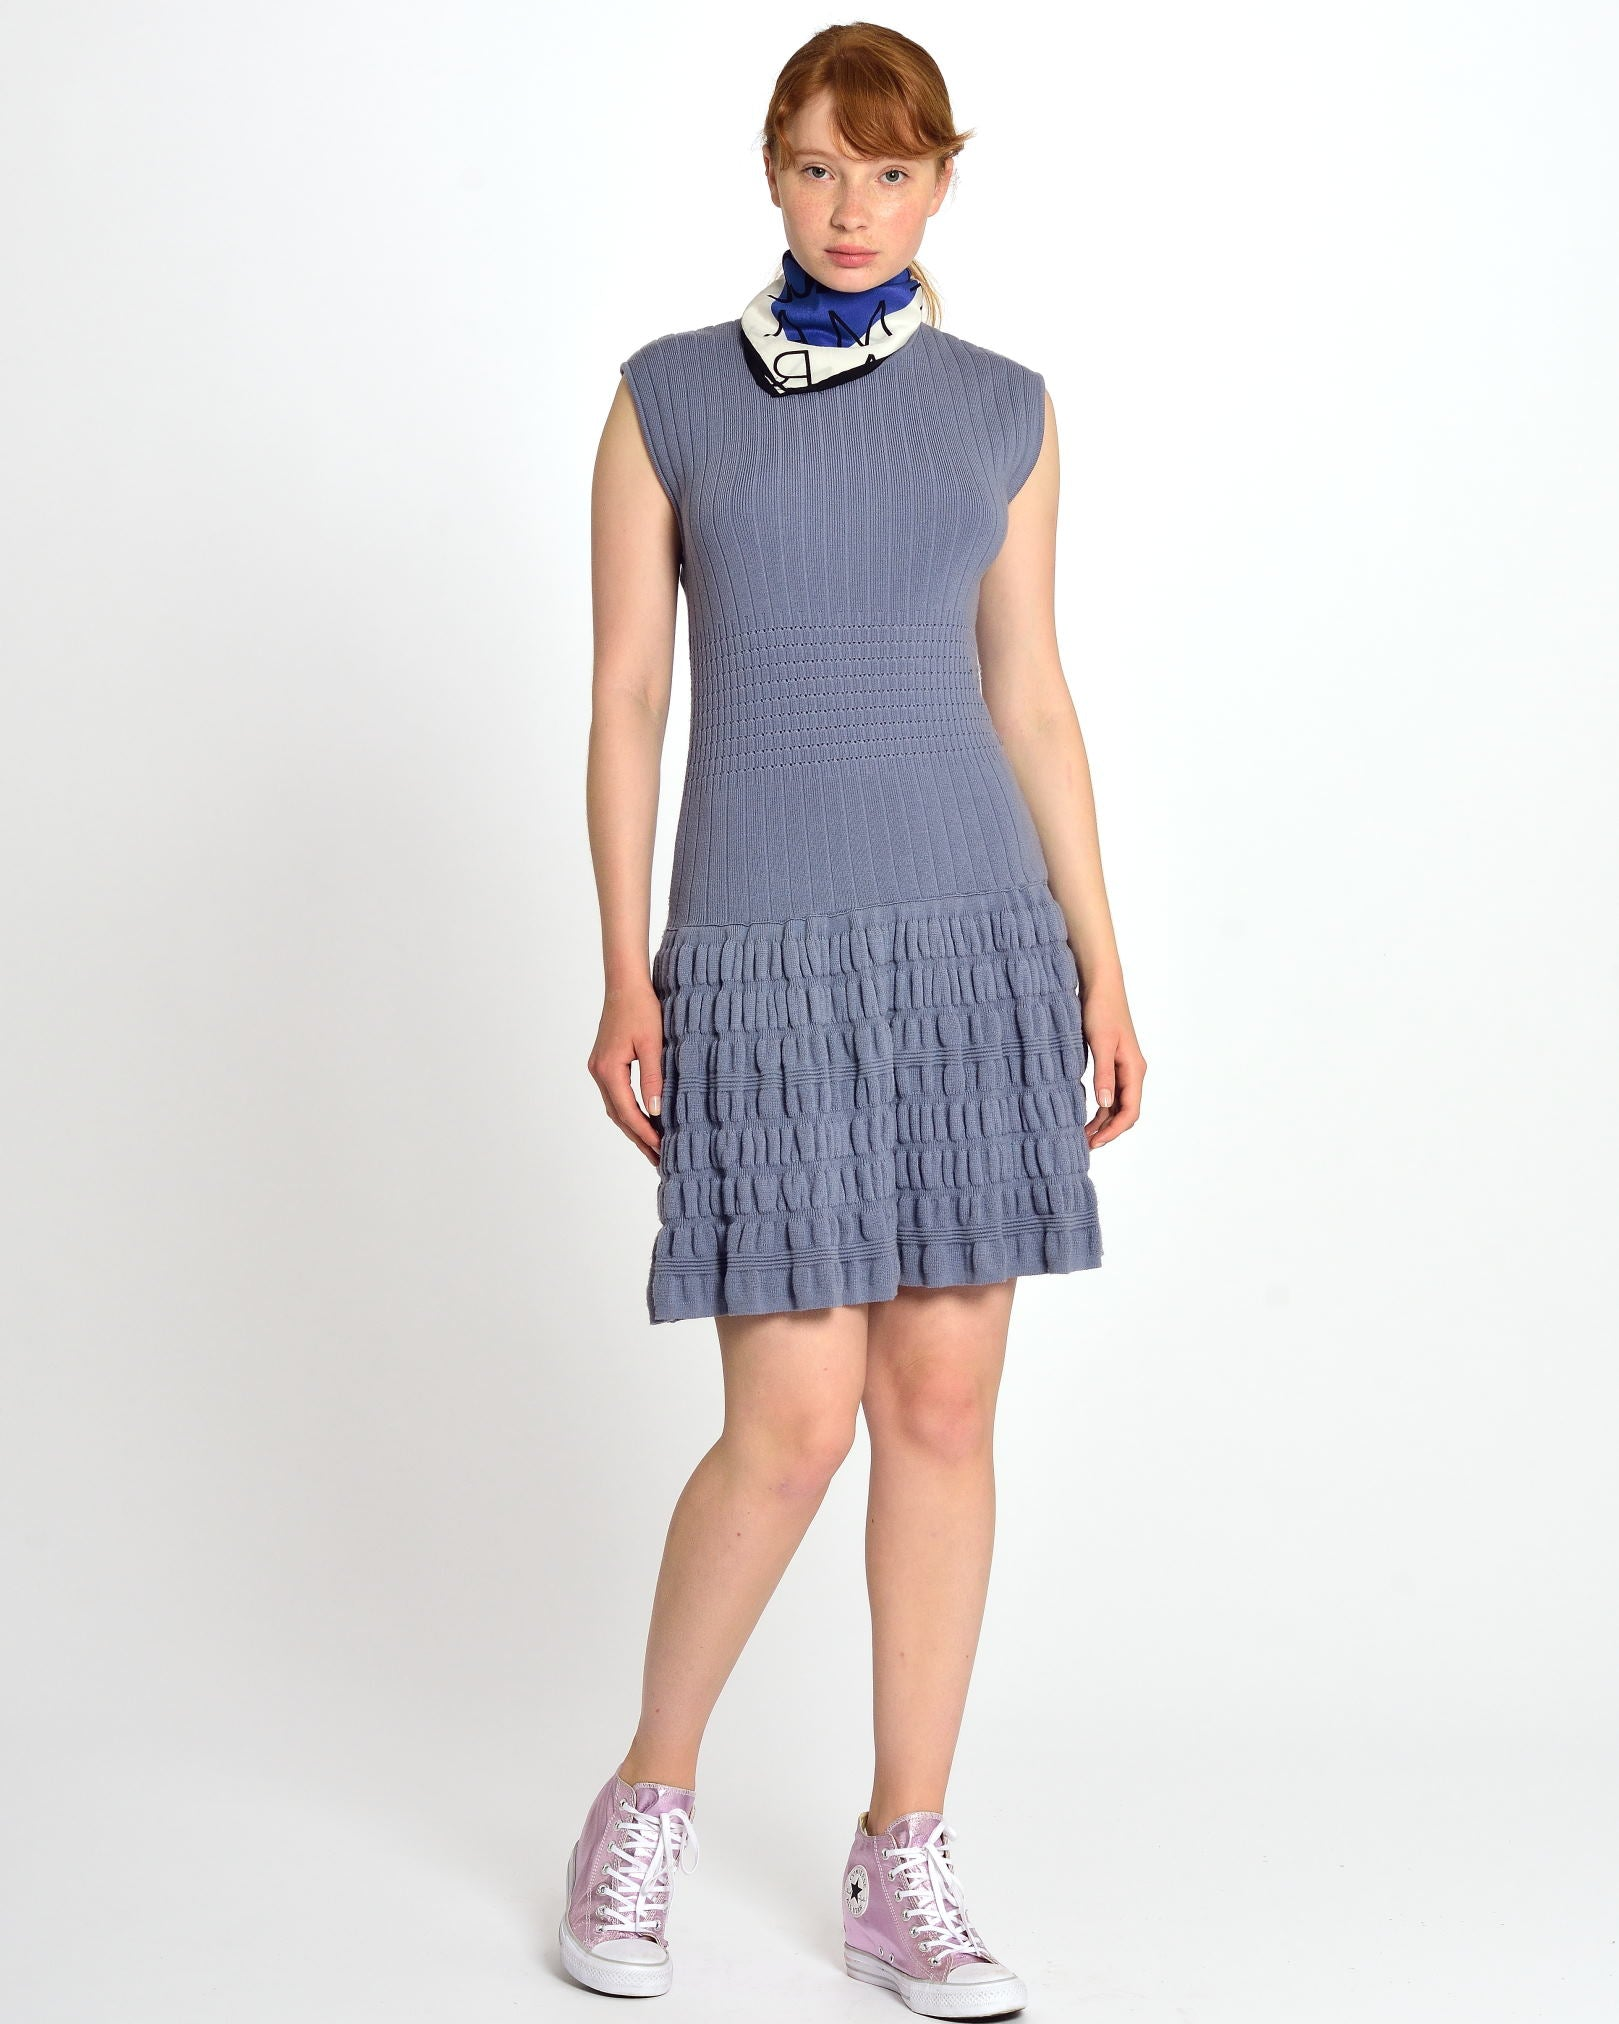 PHILOSOPHY by ALBERTA FERRETTI Lavender Dress